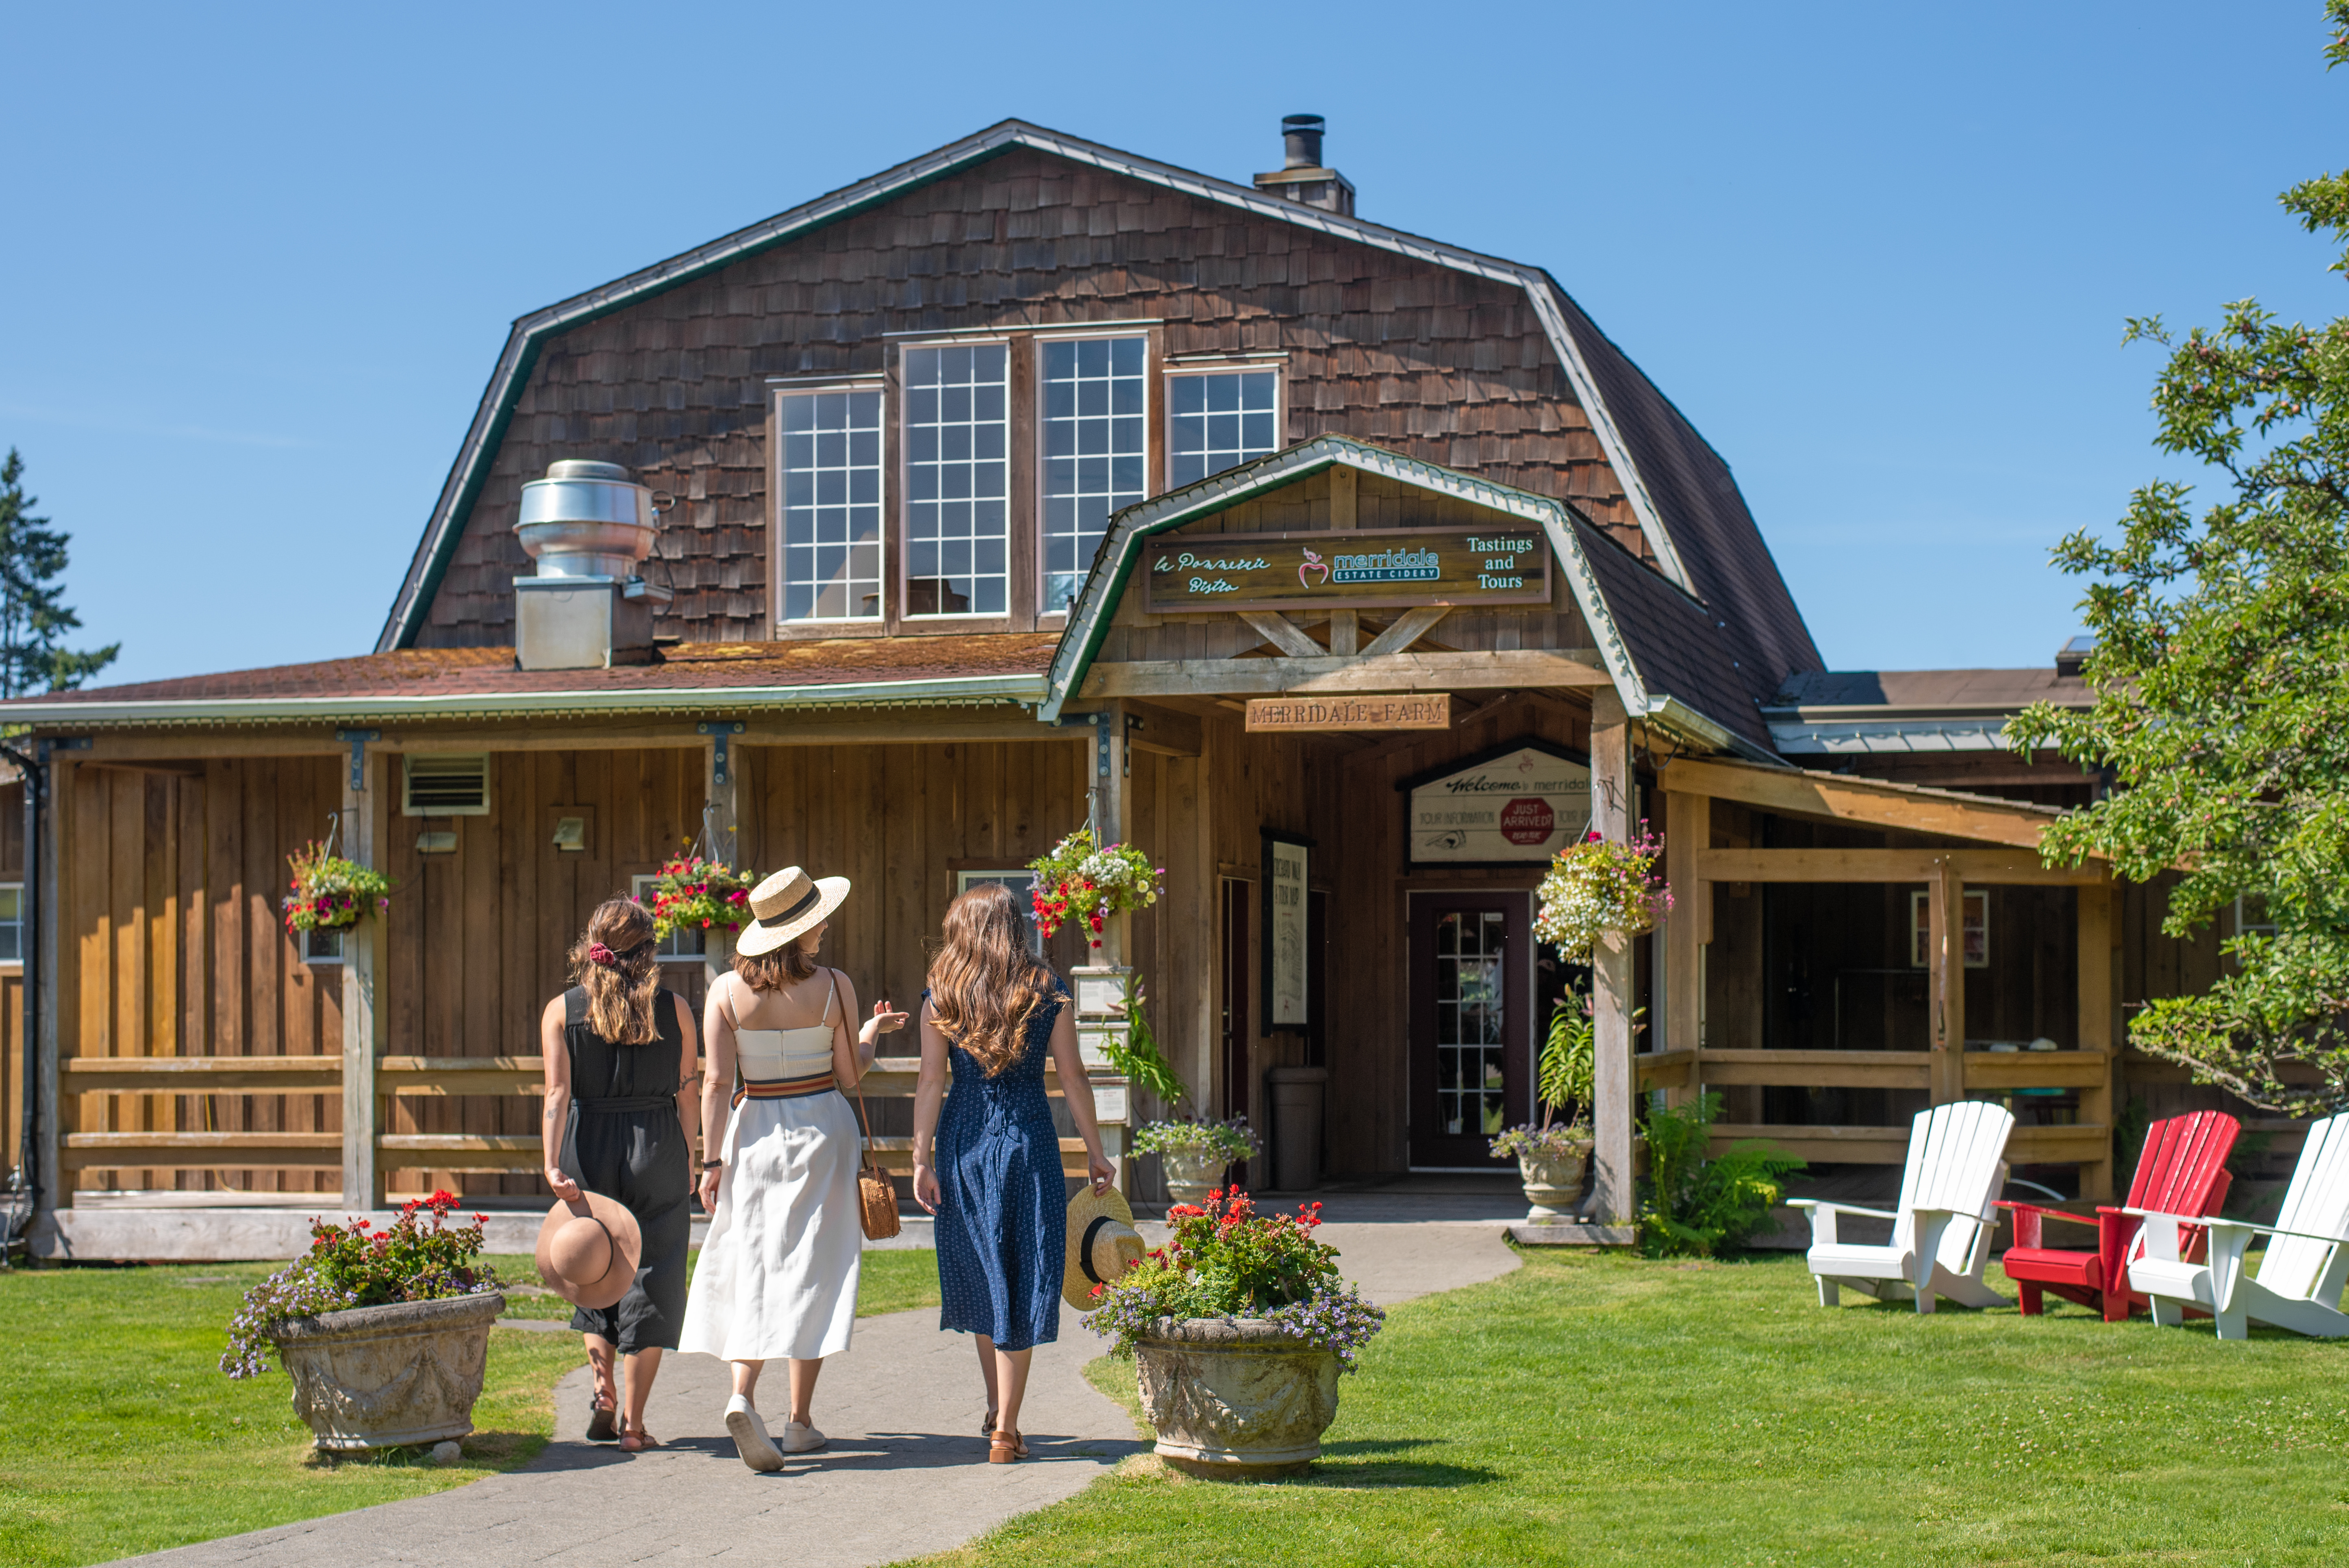 Merridale Cidery and Distillery